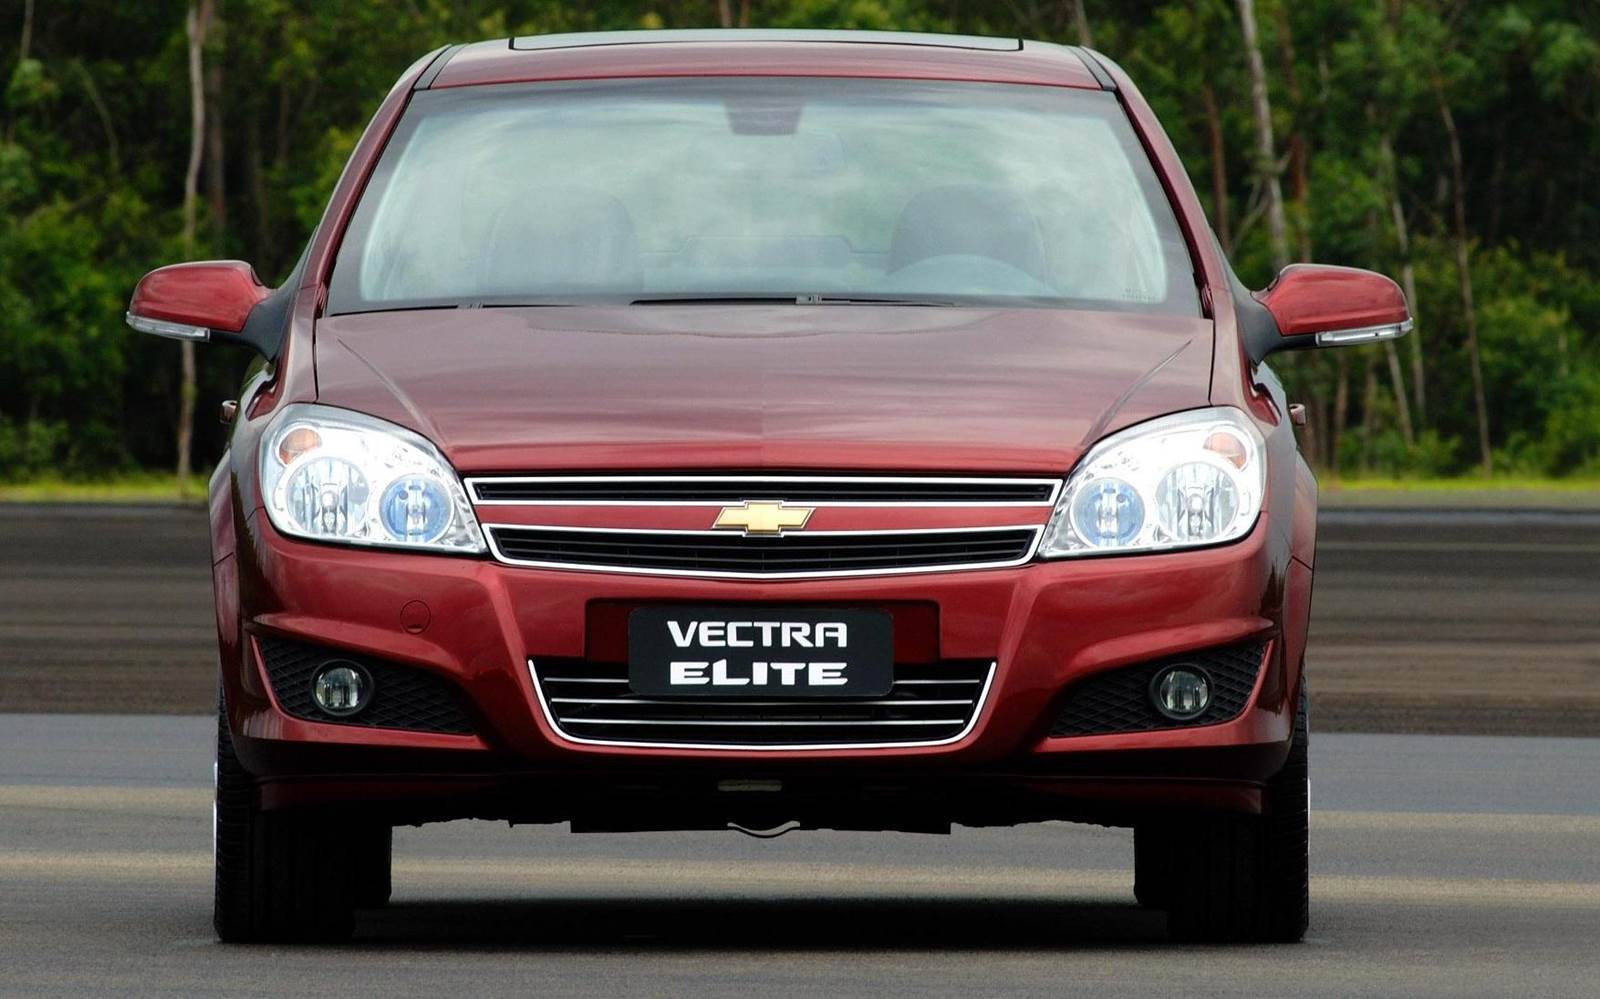 Chevrolet Vectra 2009 Next Edition